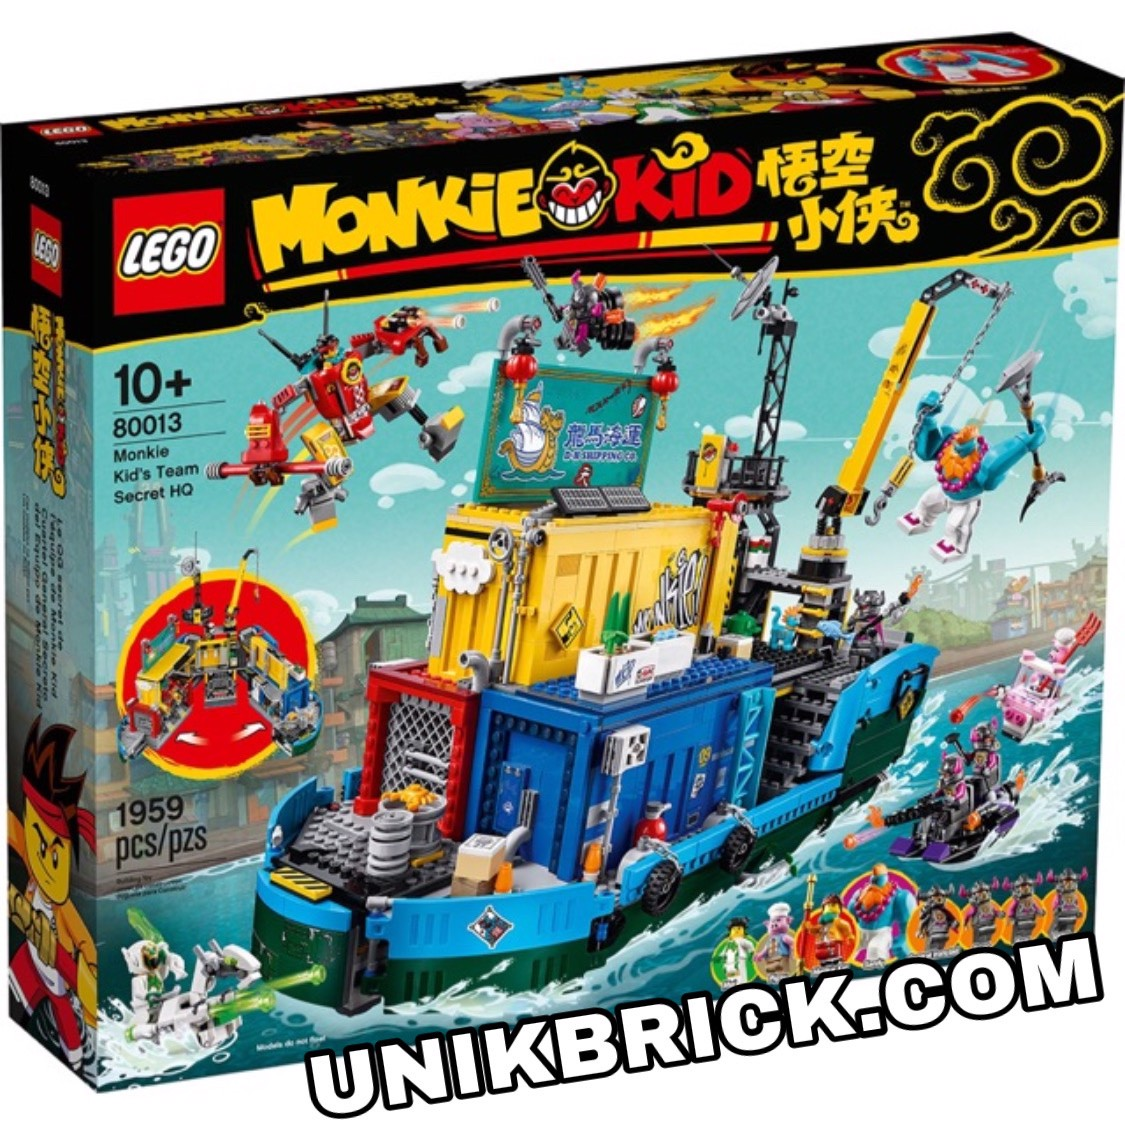 [HÀNG ĐẶT/ ORDER] LEGO 80013 Monkie Kid's Team Secret HQ